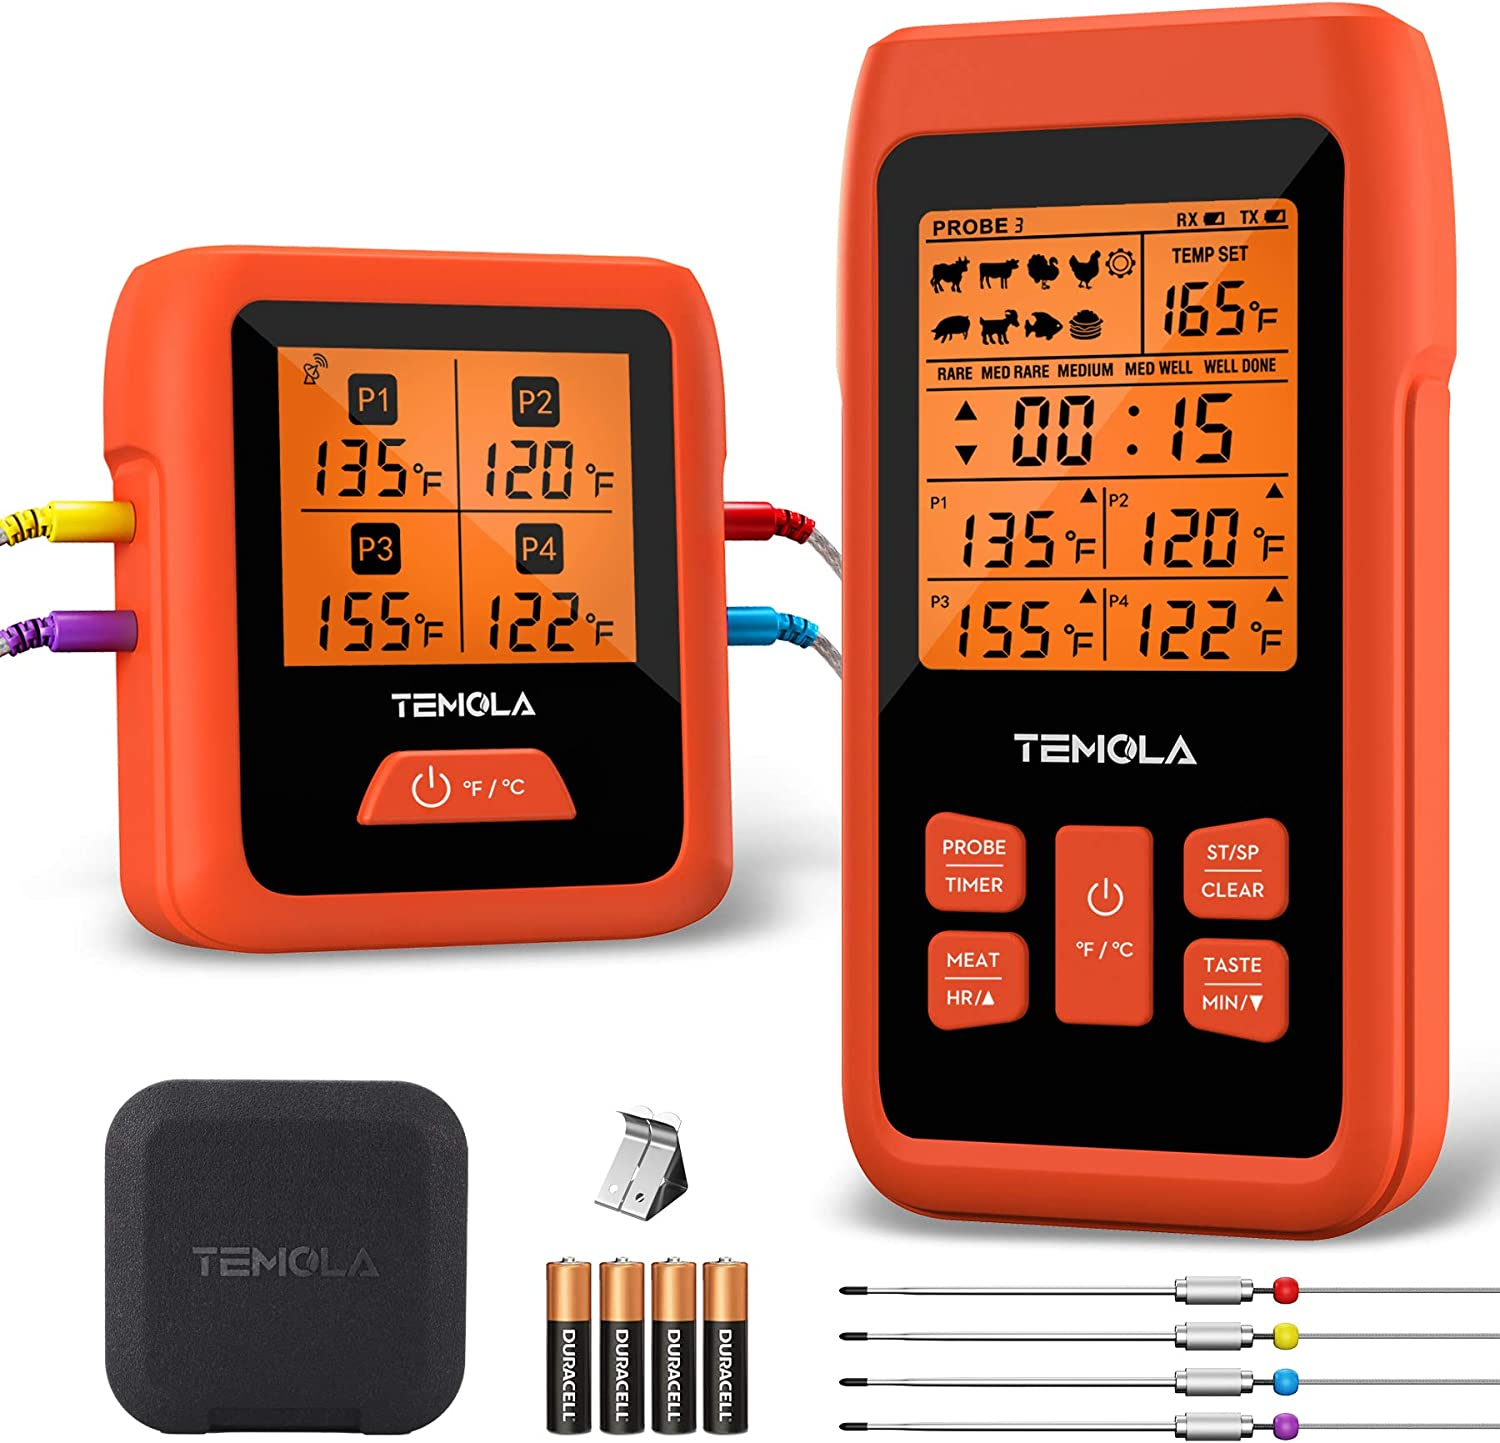 TEMOLA TM40 Wireless Digital Meat Thermometer, Instant Read Remote Cooking Food Thermometer with 4 Probes & Real 490Ft 180° FSTN Clear Wideview for Smoker Oven Grill BBQ Candy Kitchen Timer (Orange)